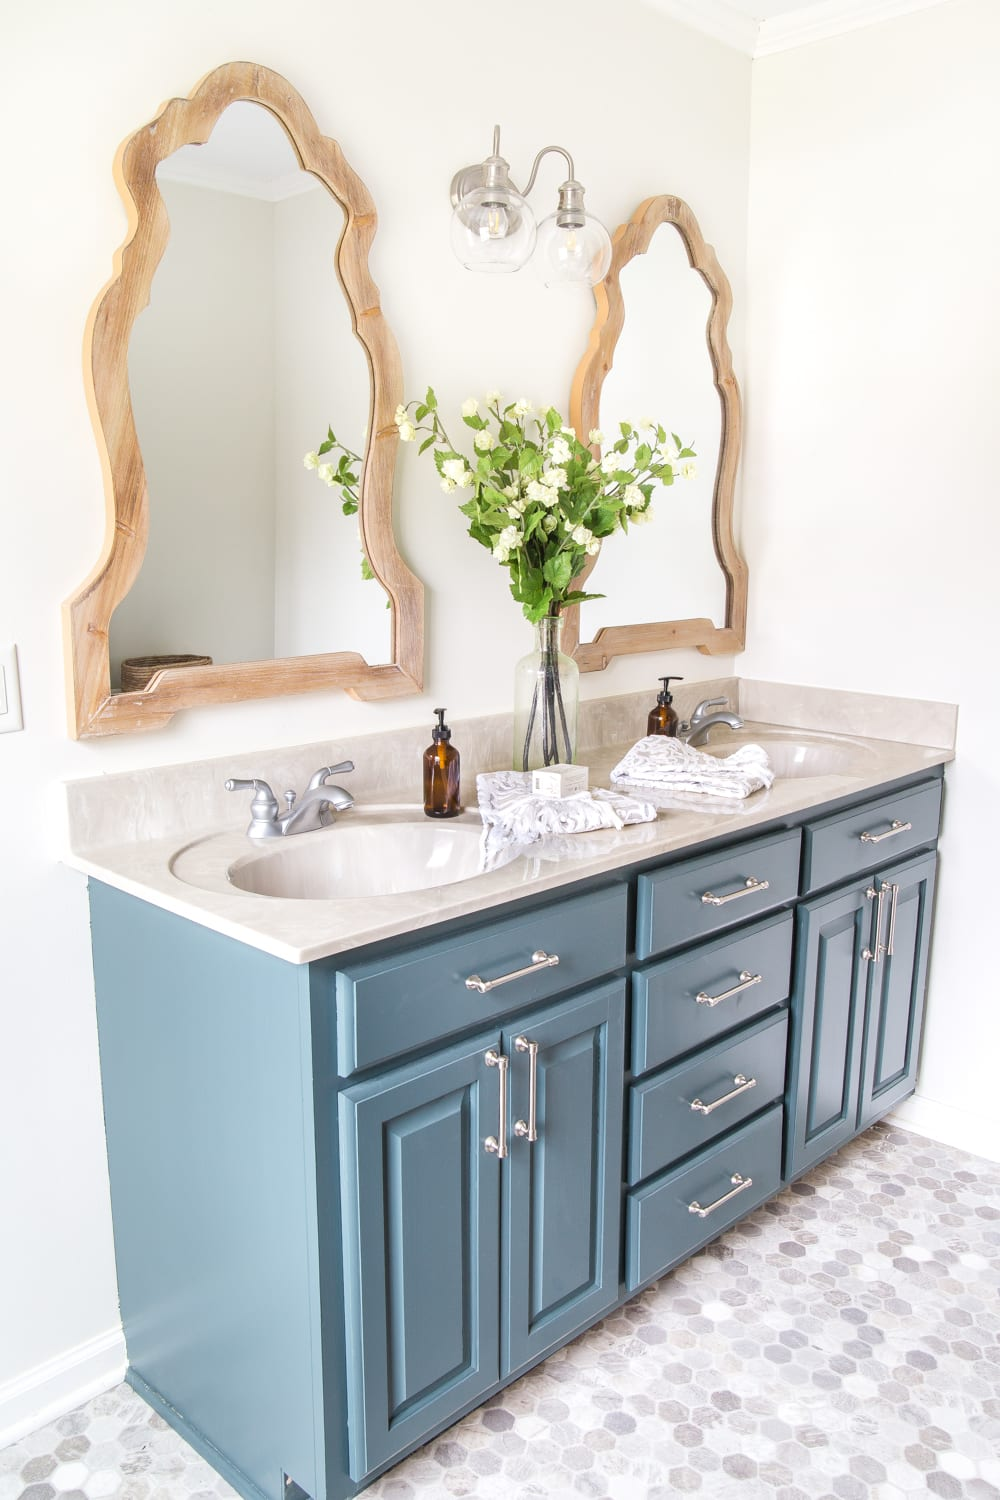 How To Organize A Bathroom How To Organize A Bathroom Vanity In 6 Quick Steps Bless Er House